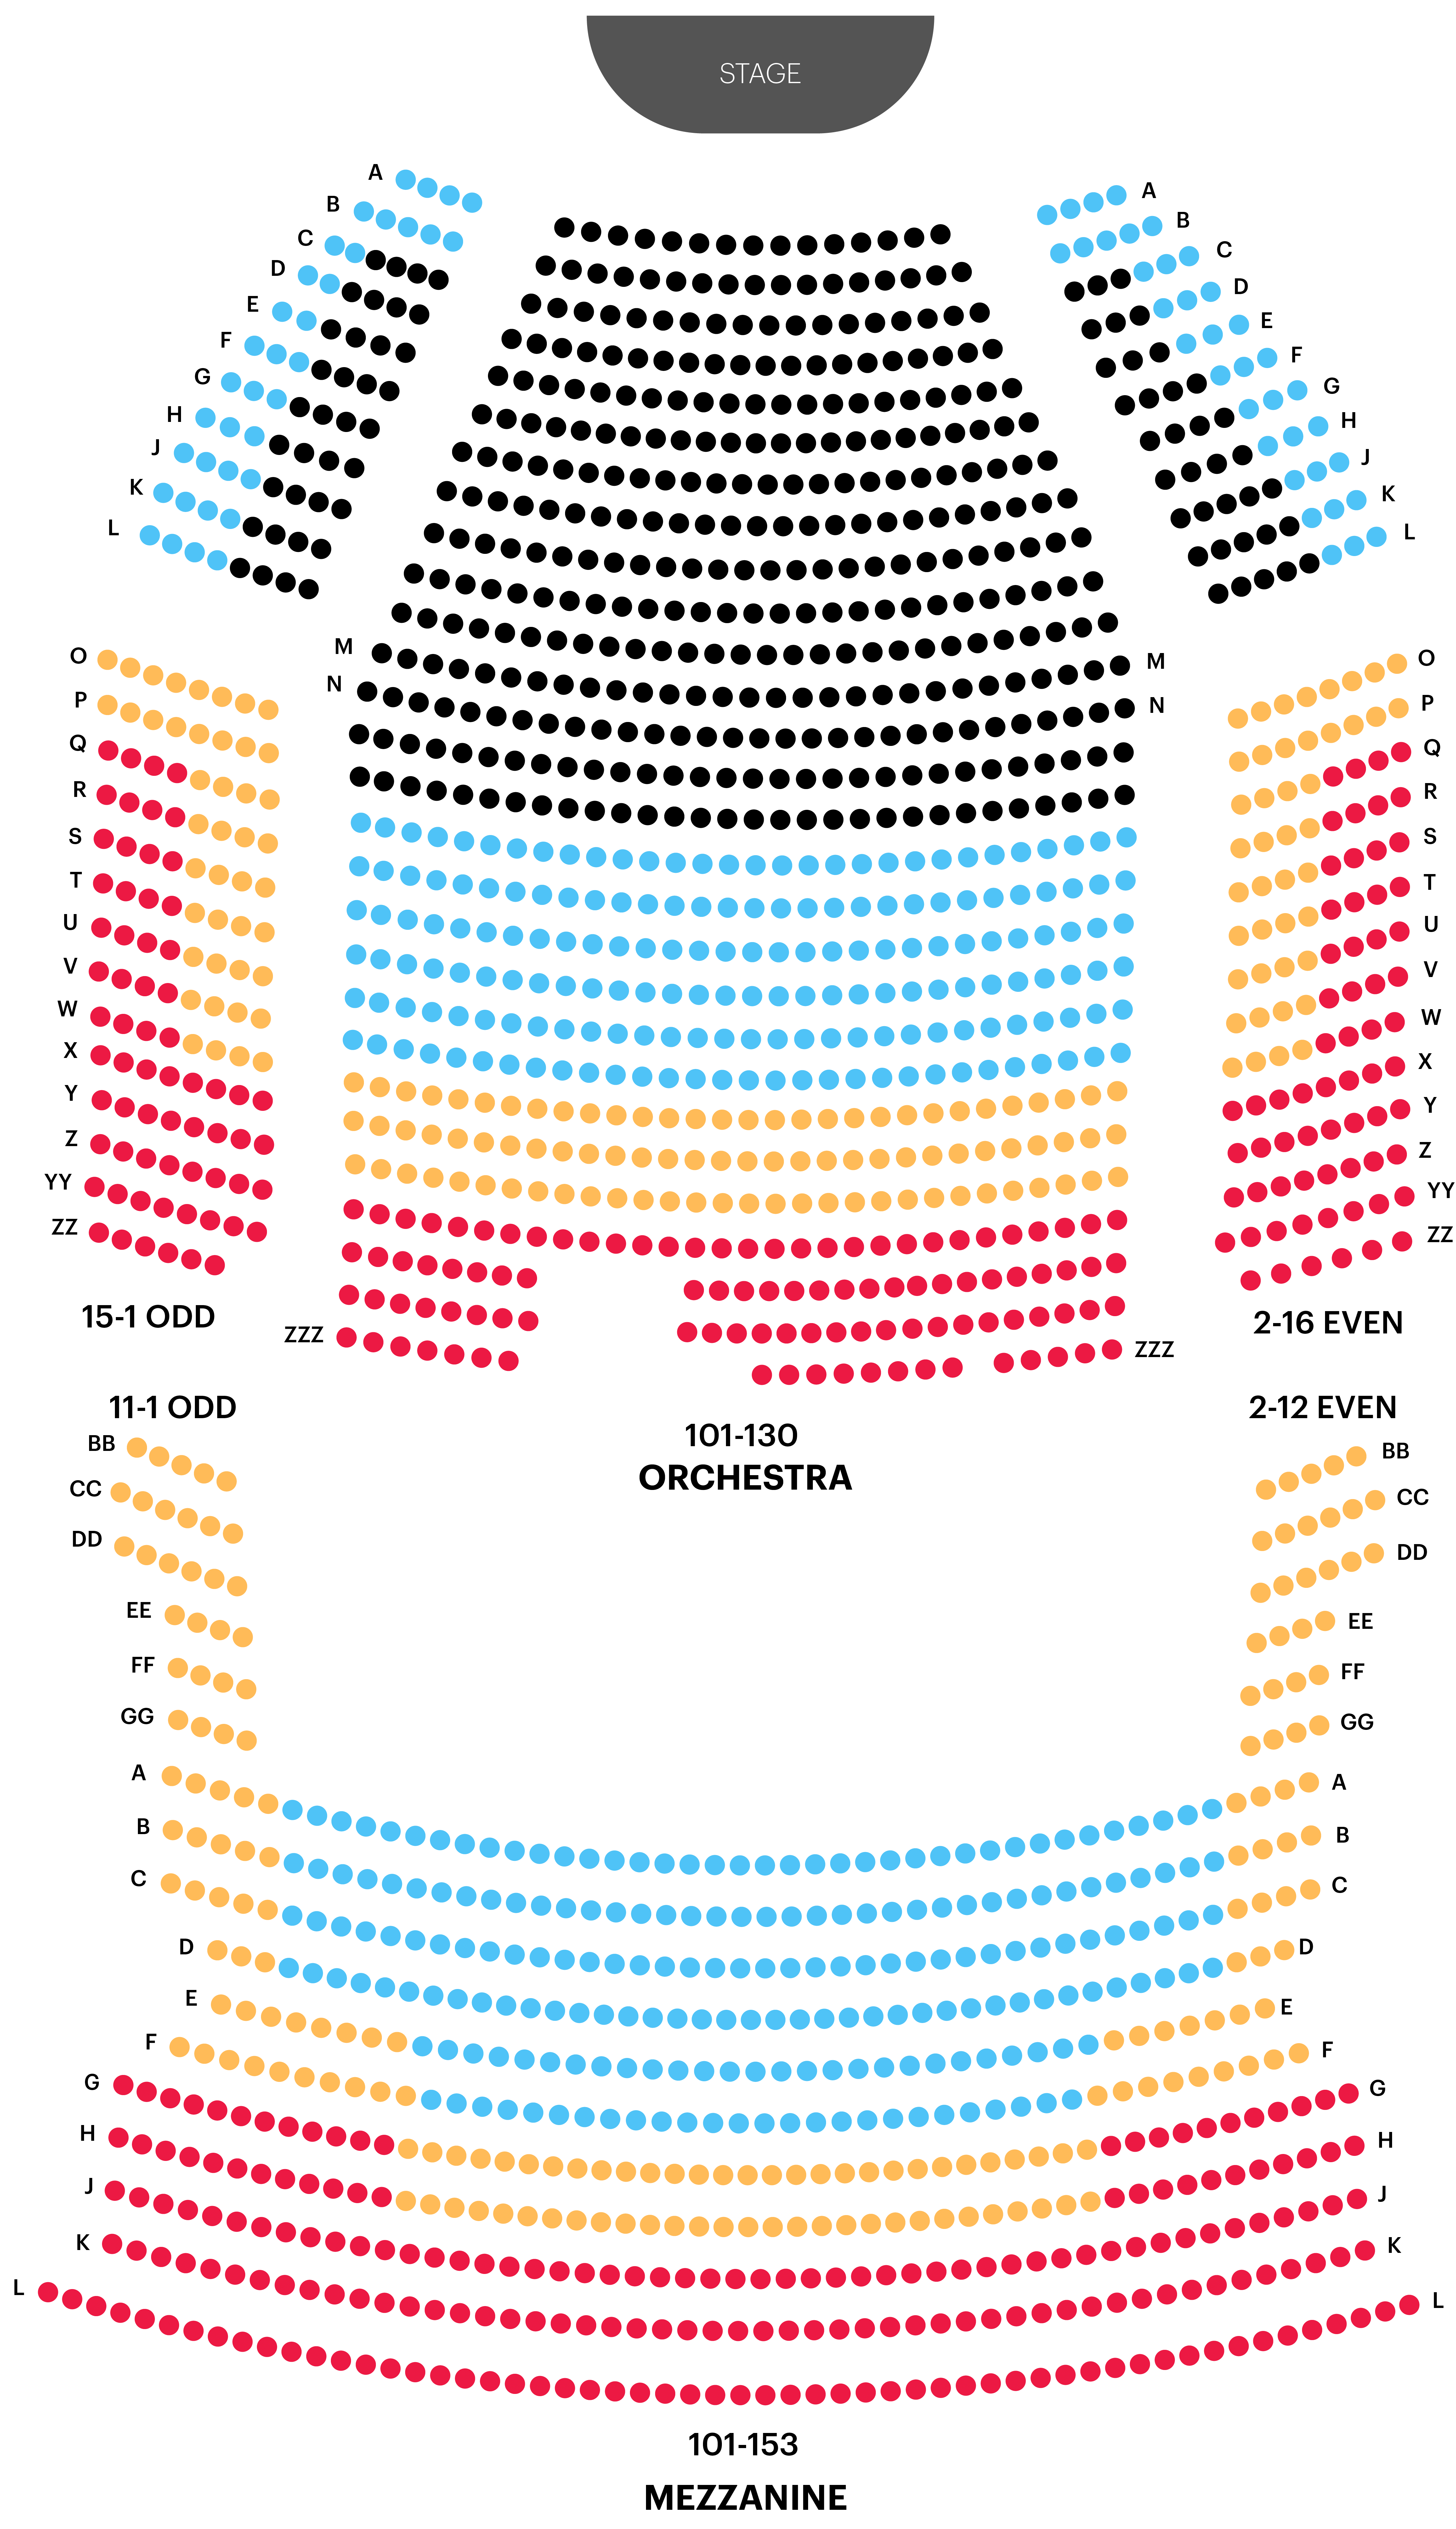 Minskoff Theatre Seating Chart Map